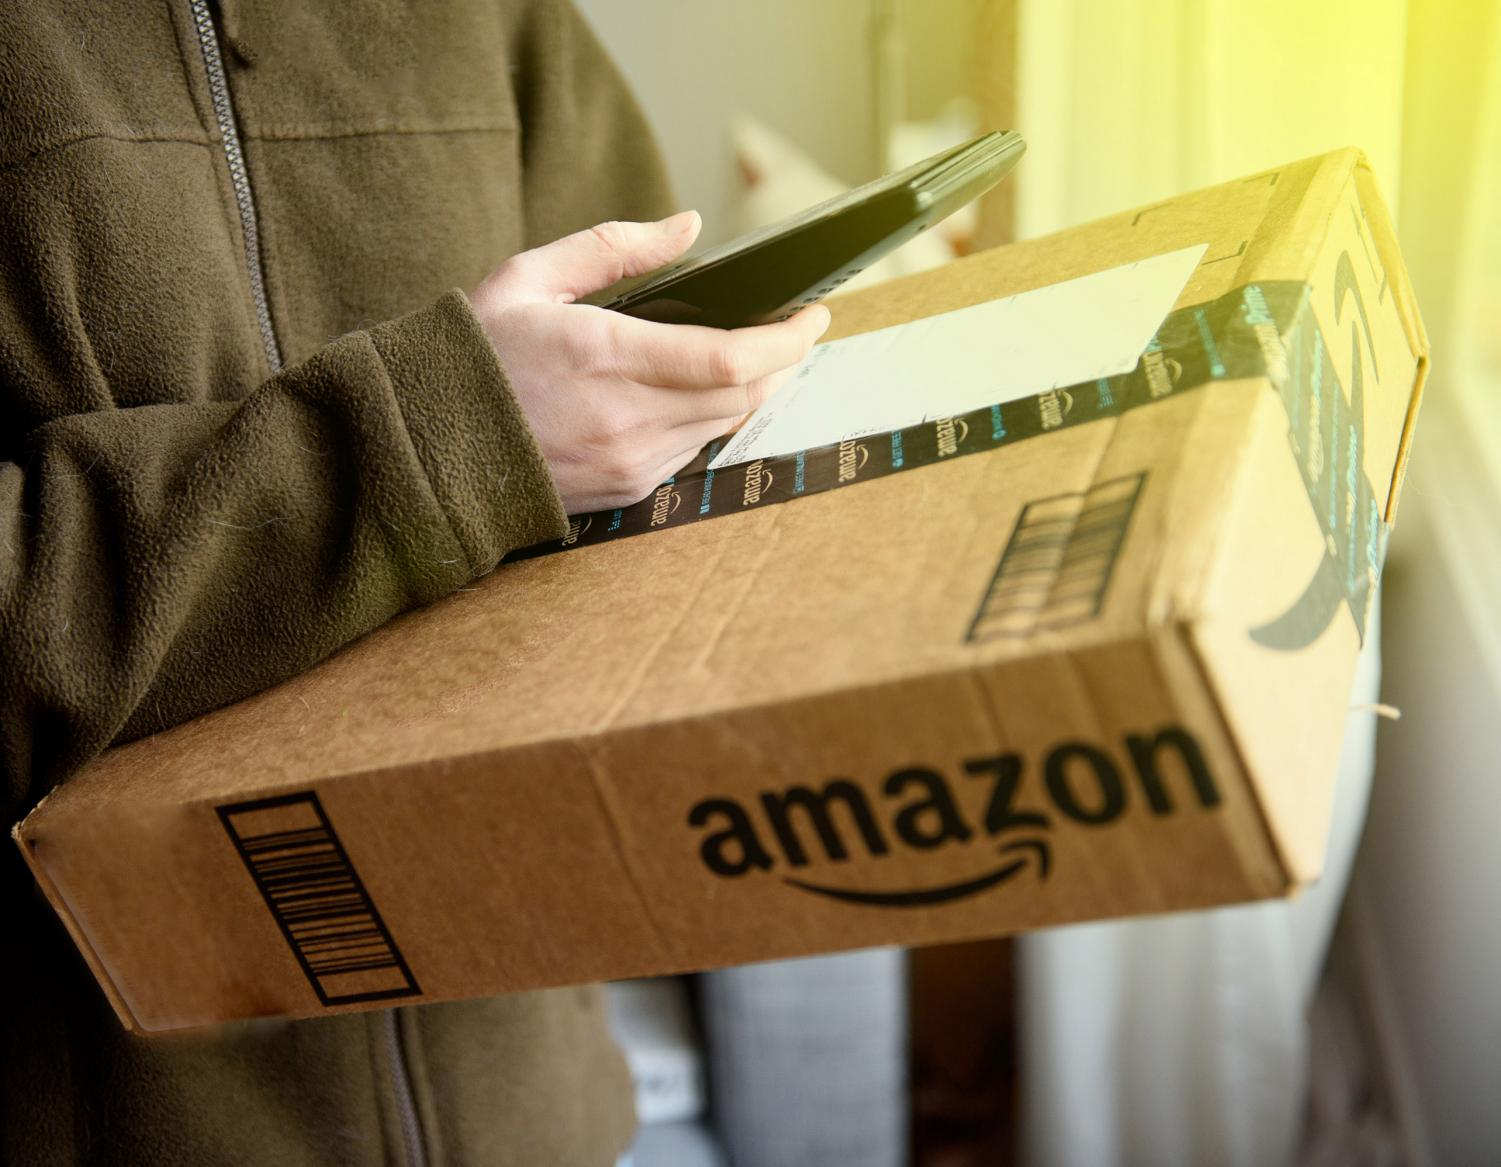 Opinion columnist Sam King discusses the recently announced Amazon Key, a service that allows Amazon Prime members to have a delivery person place their package inside their home to protect from theft and weather damage.